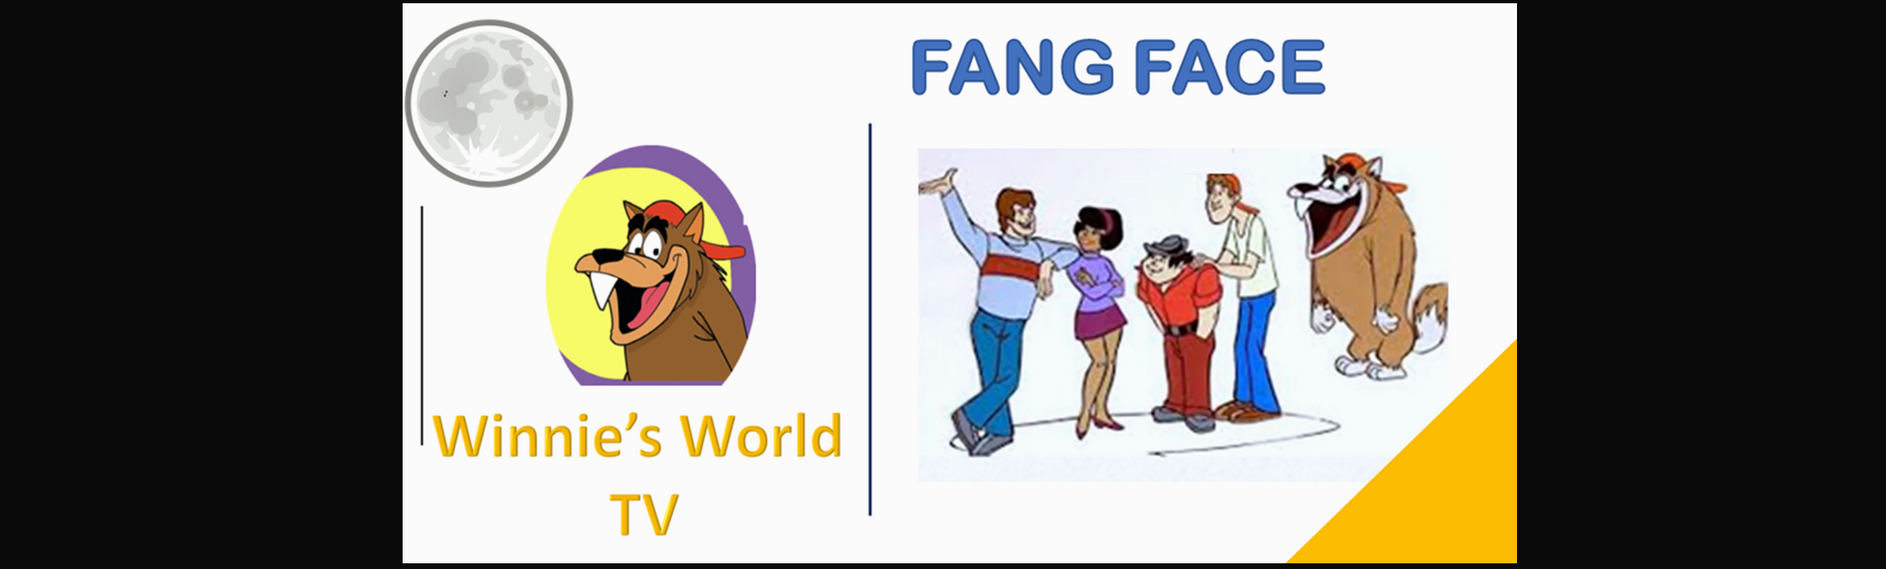 Fang Face on Winnies World.png